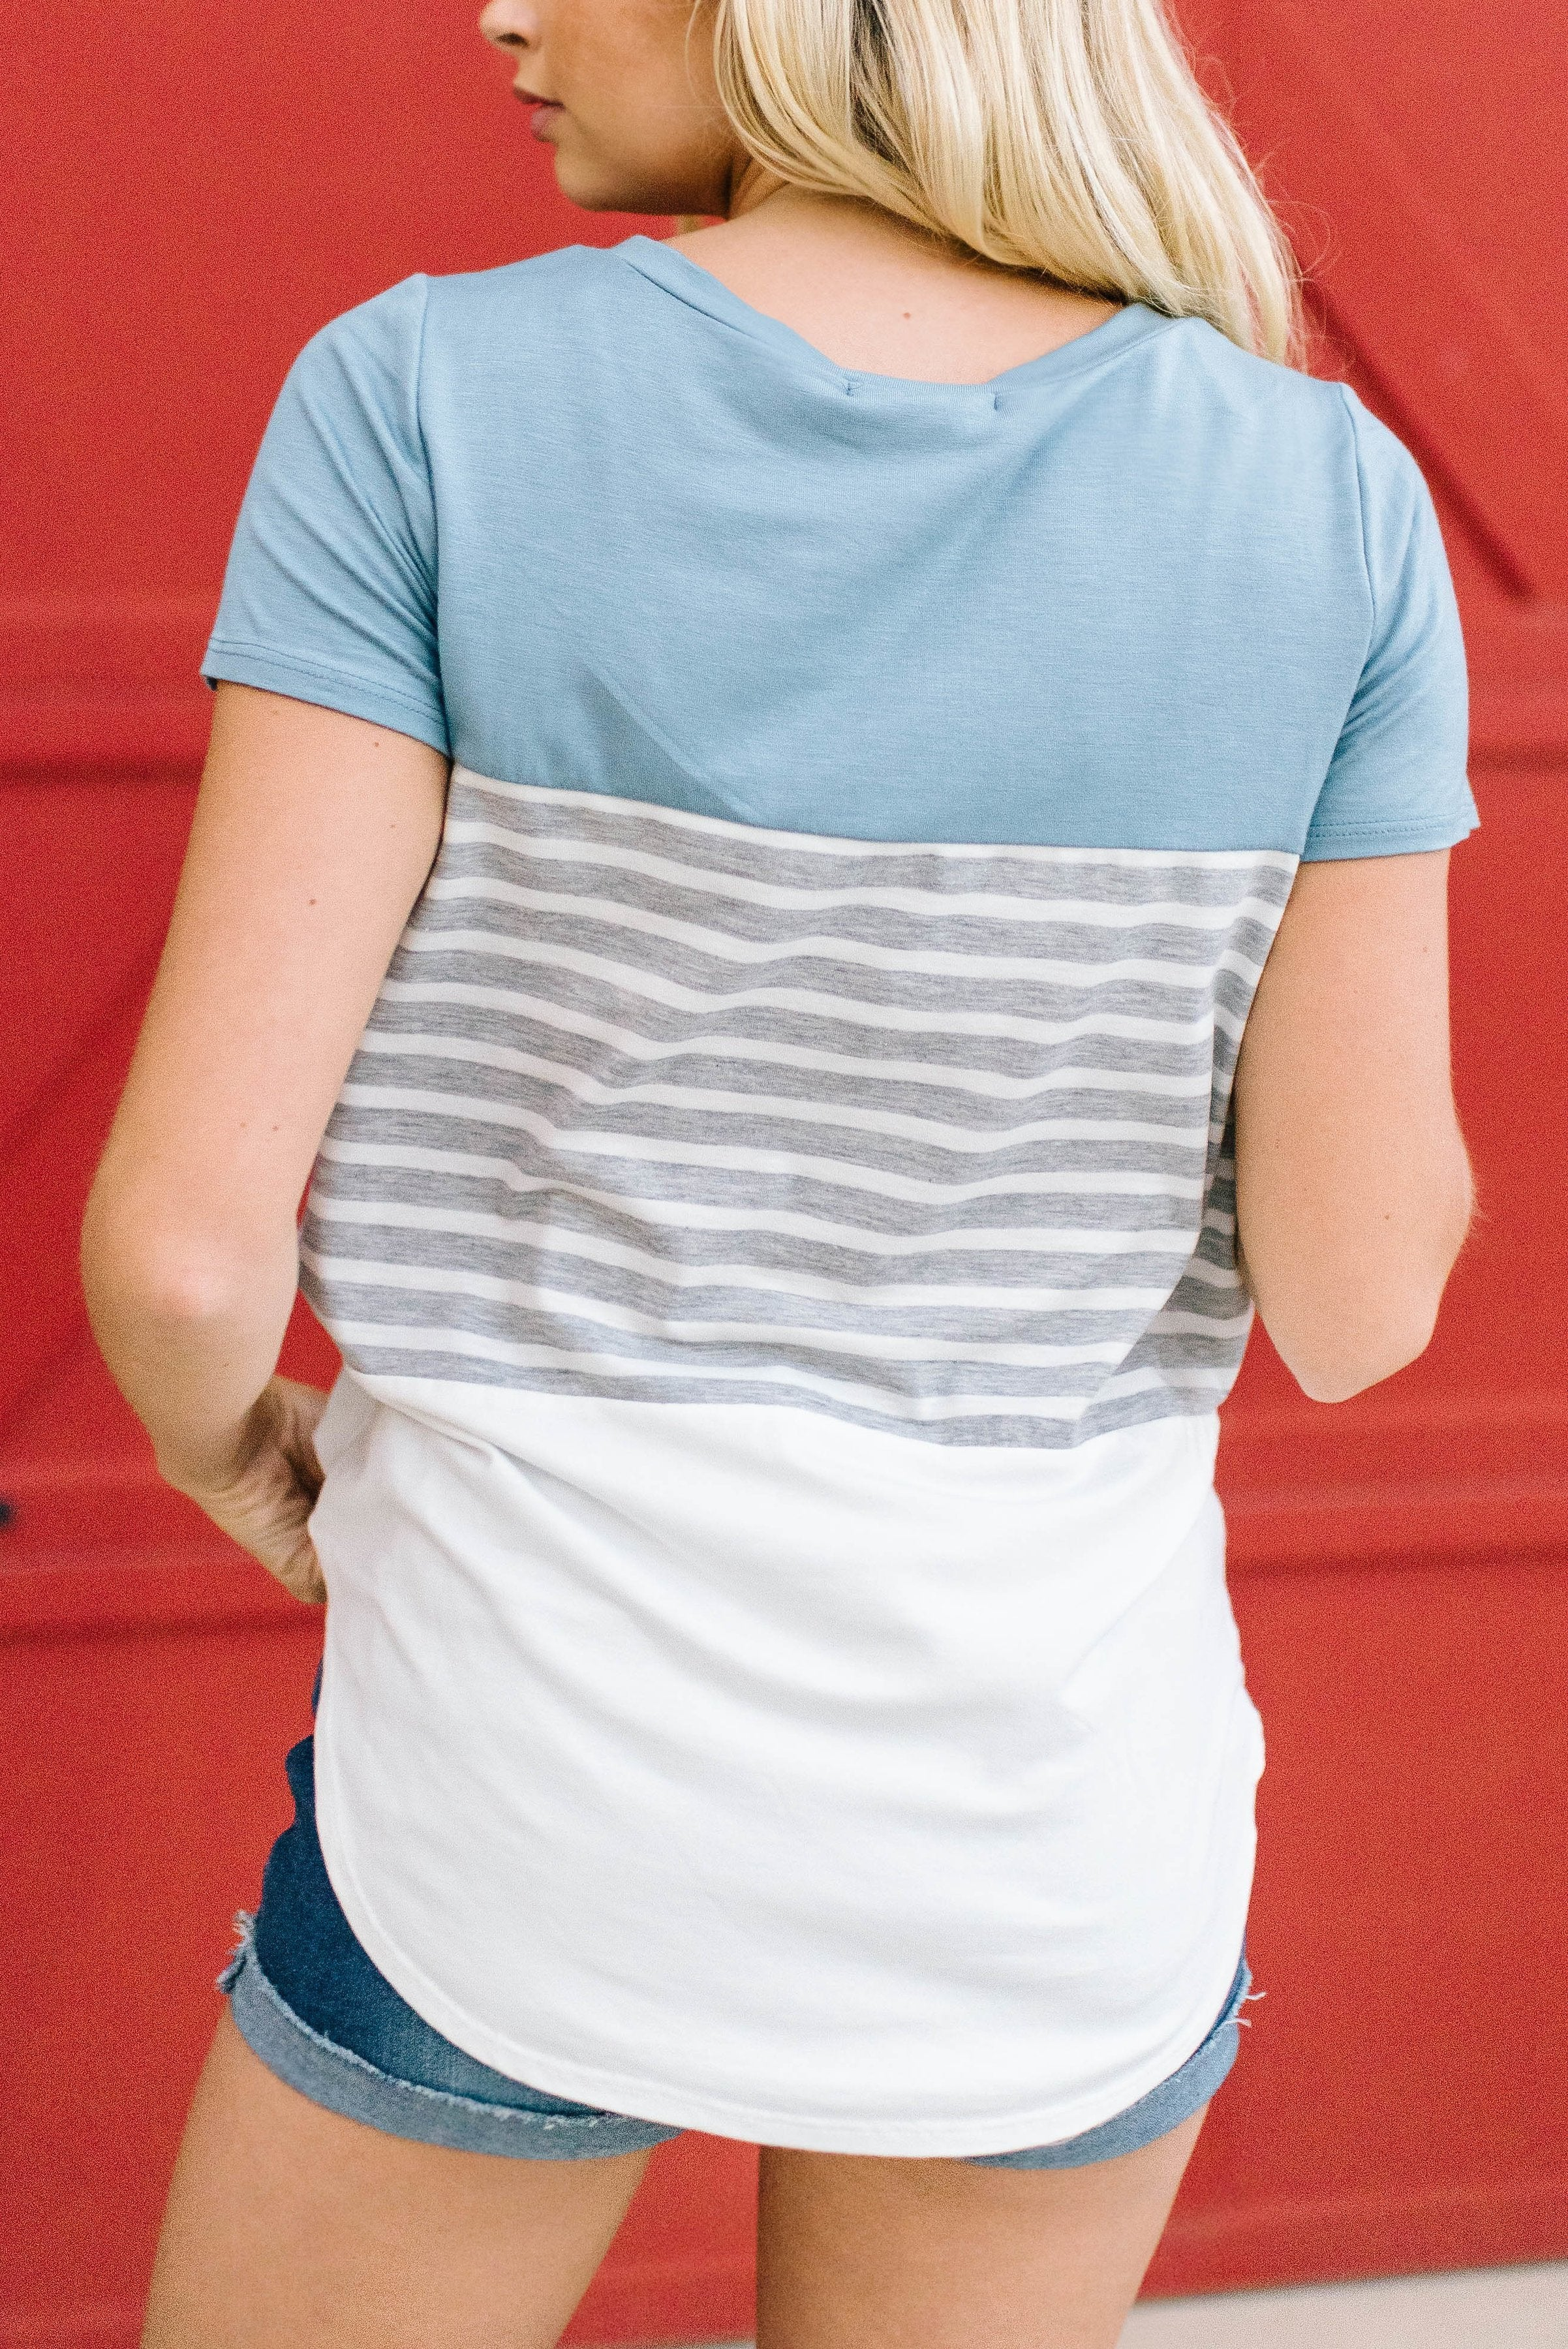 Blue Color Block + Stripes Tee